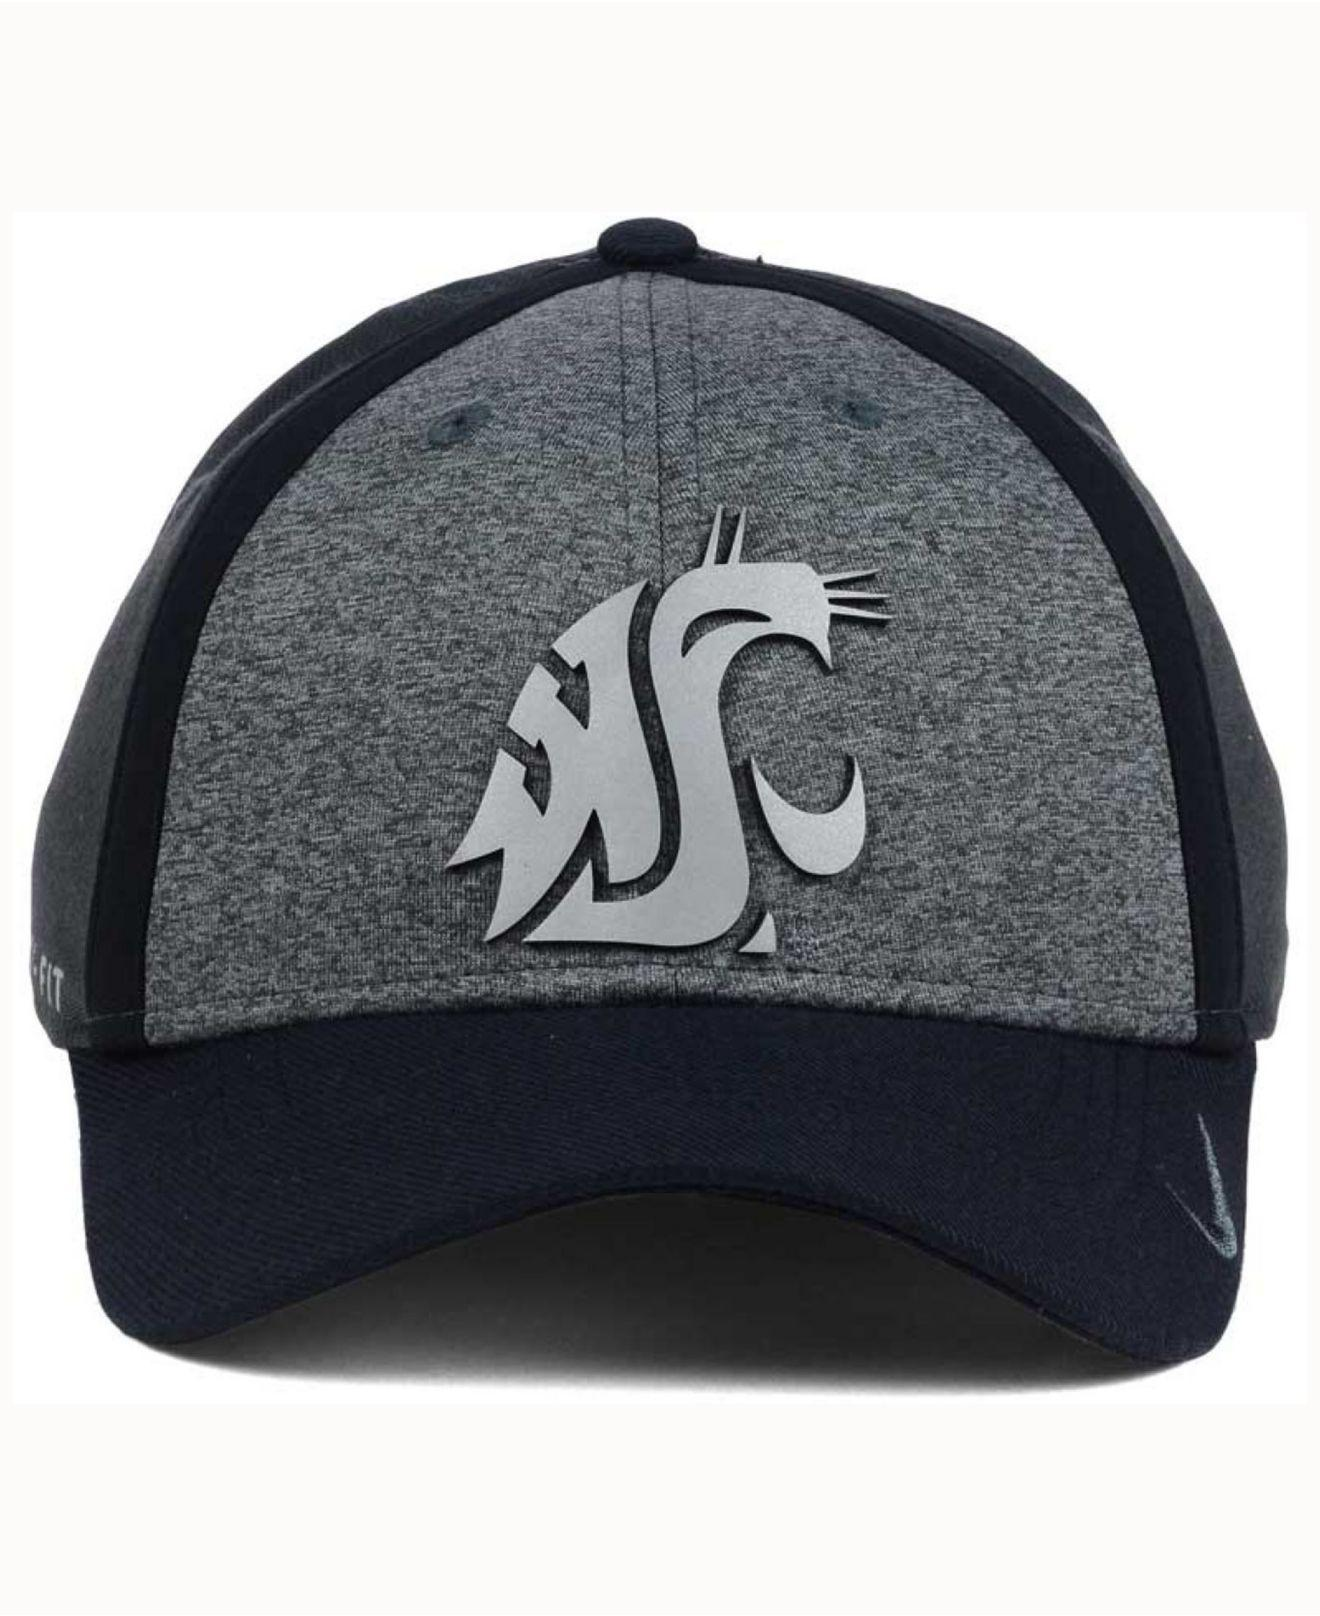 6c79054a993a4 ... best price lyst nike washington state cougars heather stretch fit cap  for men bd14e 4830b